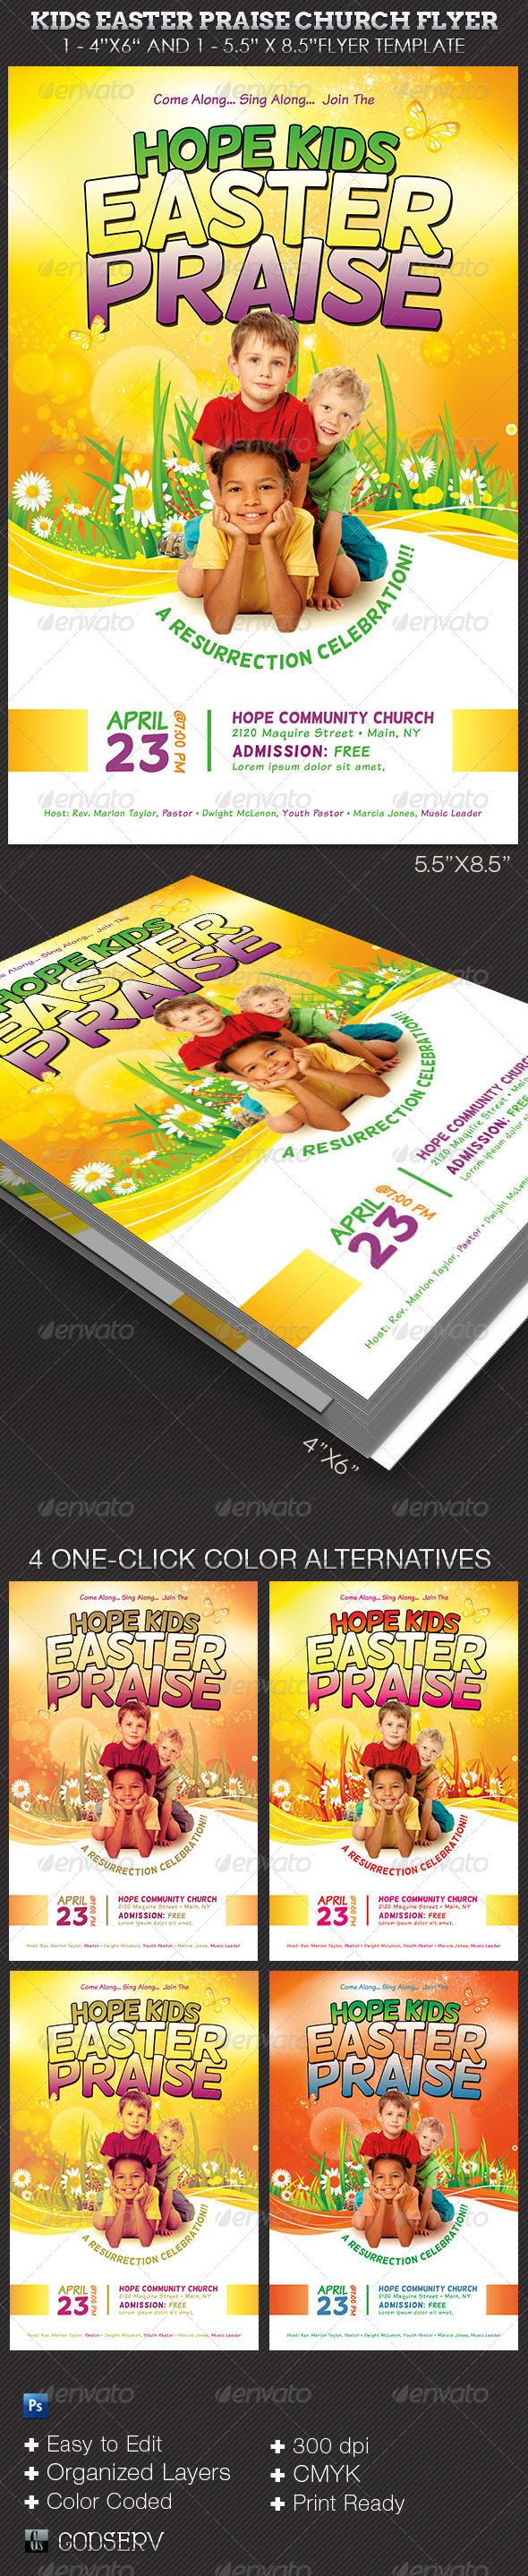 Kids Easter Praise Church Flyer Template - Church Flyers